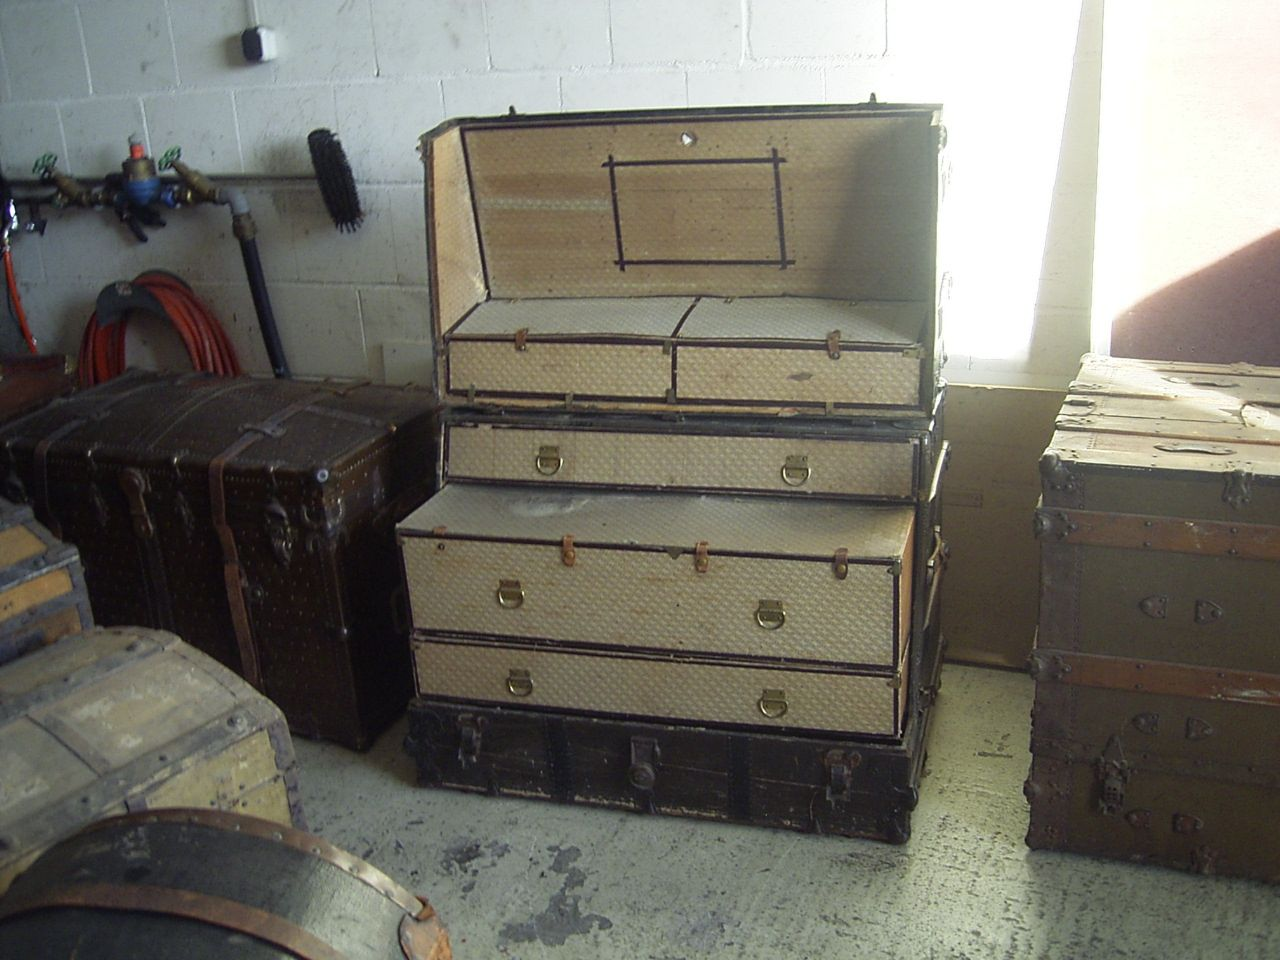 Rare old travel trunk with drawers. www.zeitreise-bamberg.de